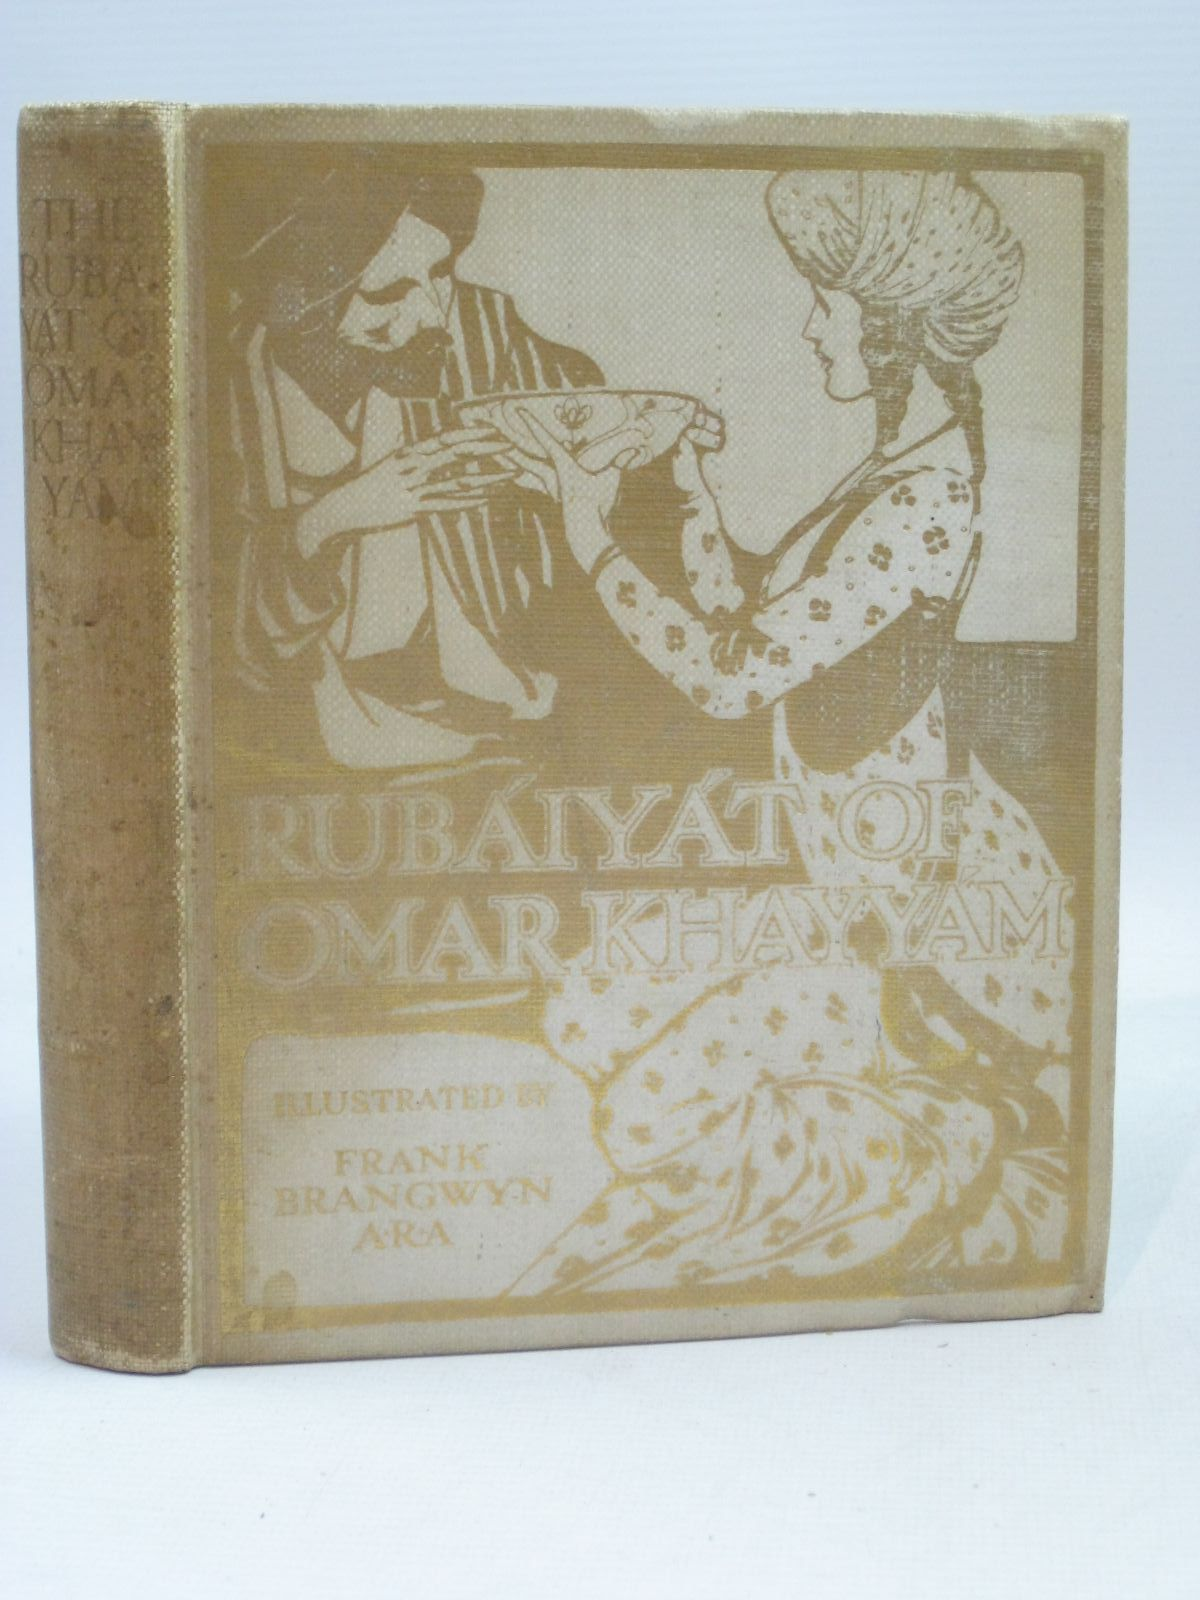 Photo of THE RUBAIYAT OF OMAR KHAYYAM written by Fitzgerald, Edward illustrated by Brangwyn, Frank published by T. N. Foulis (STOCK CODE: 1506170)  for sale by Stella & Rose's Books